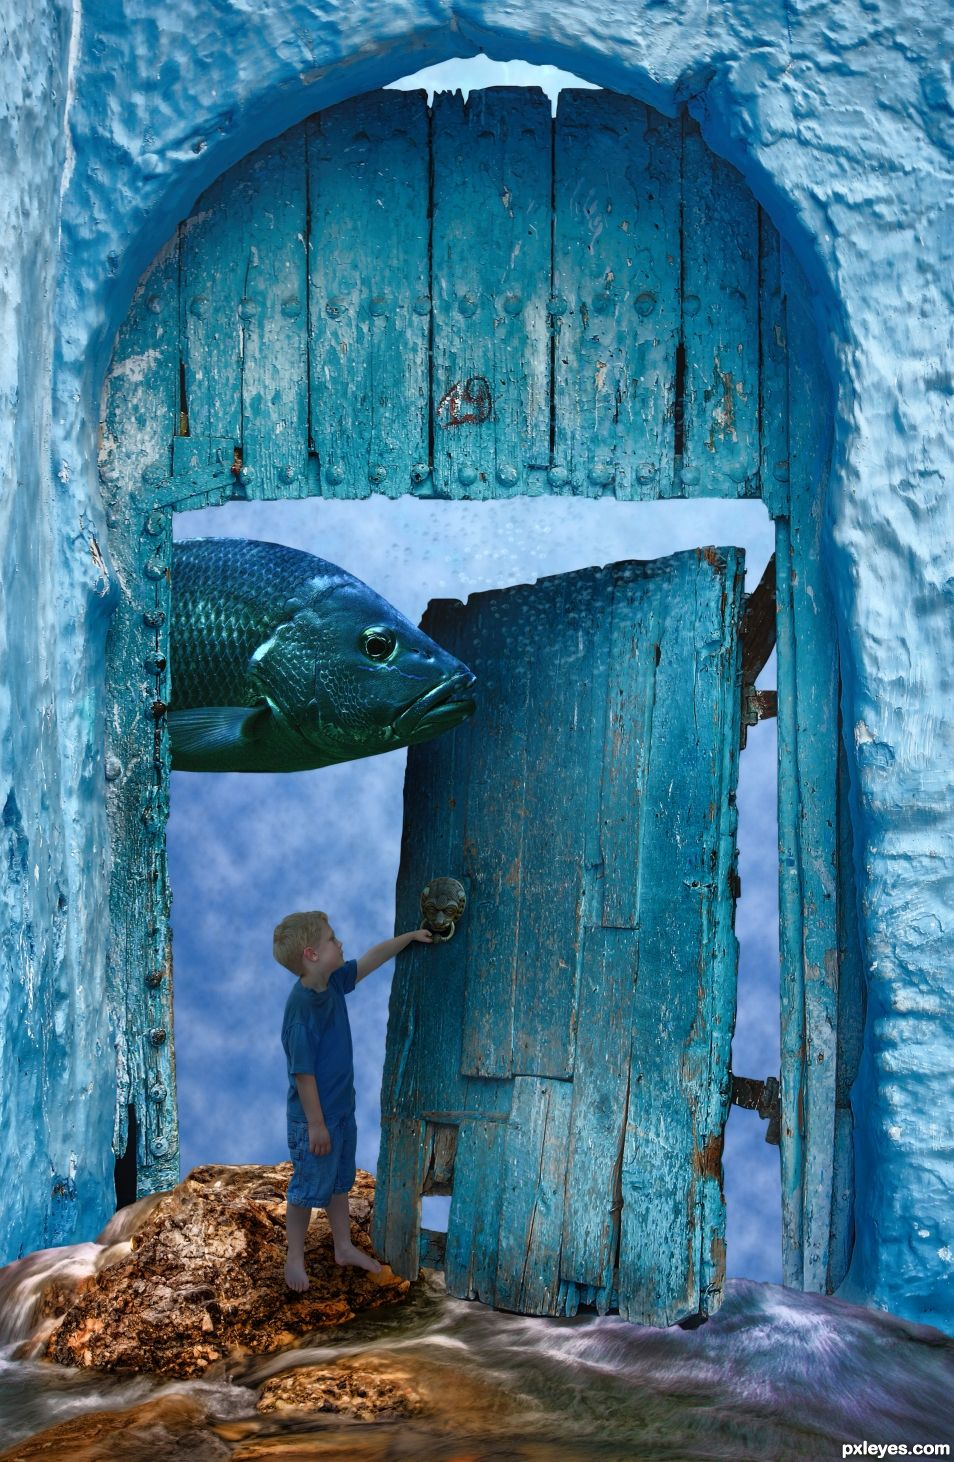 Knocking on Ocean door